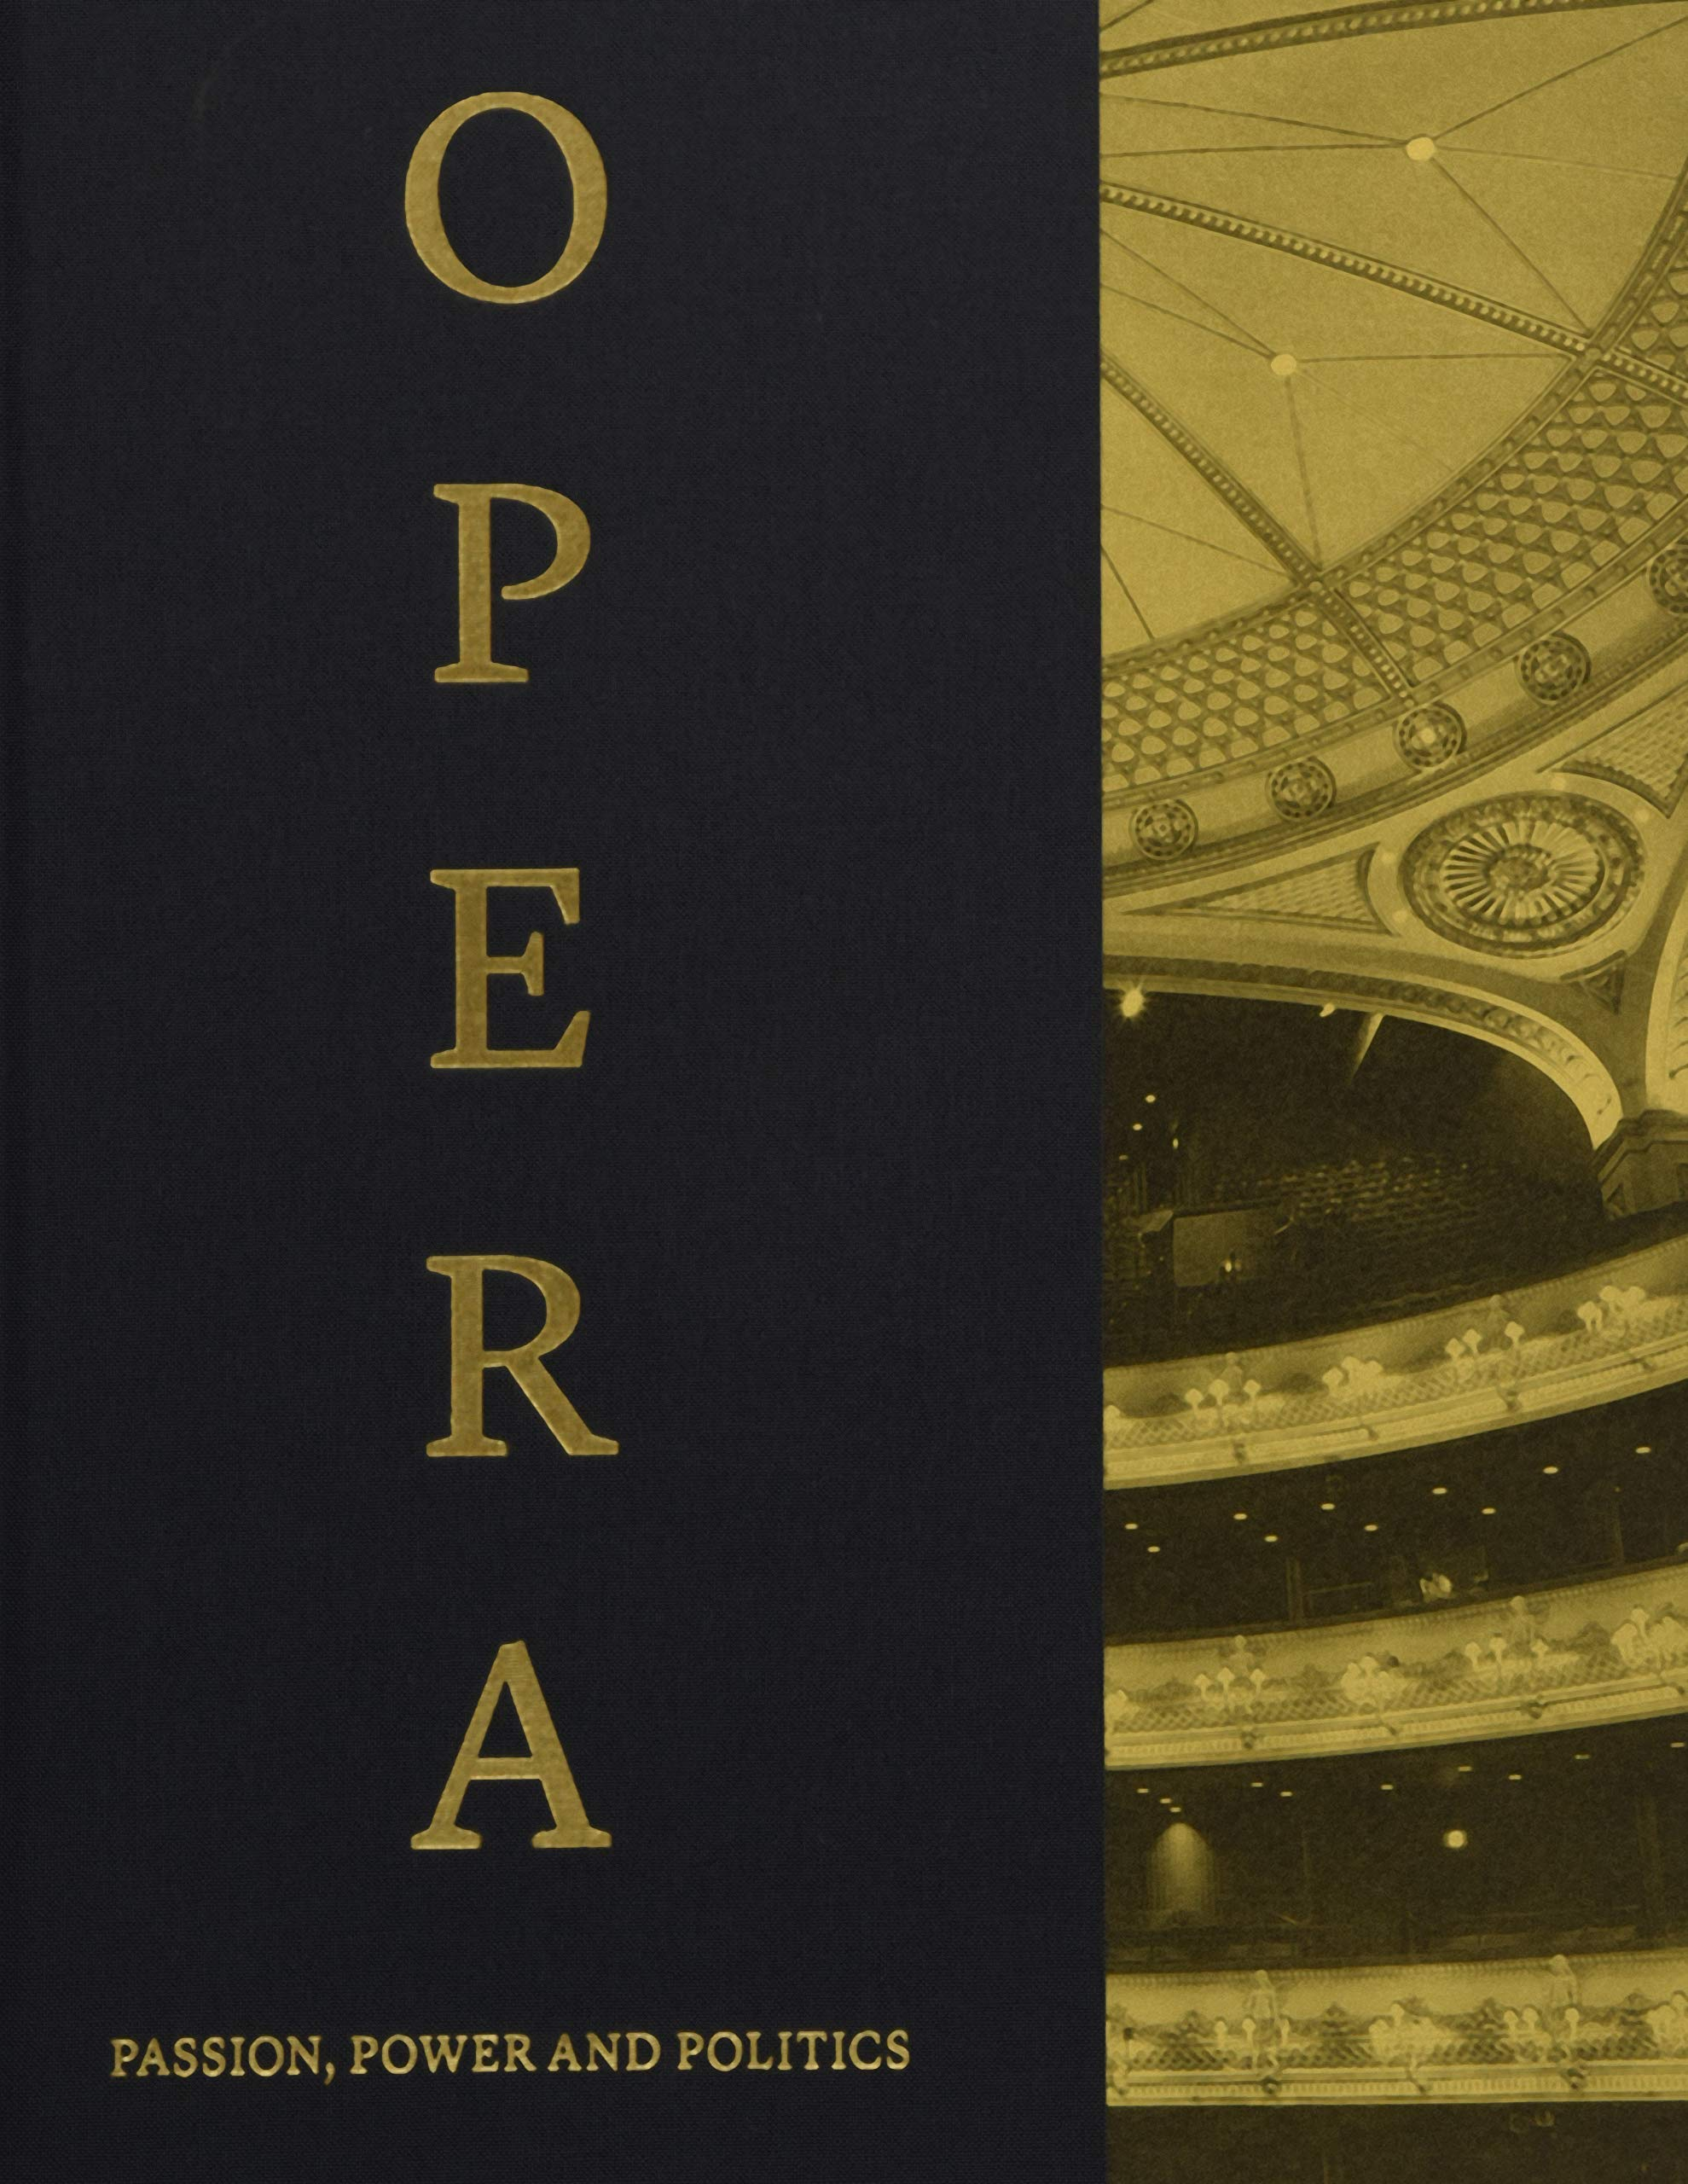 Best Music Coffee Table Books.Opera Passion Power And Politics Amazon Co Uk Kate Bailey